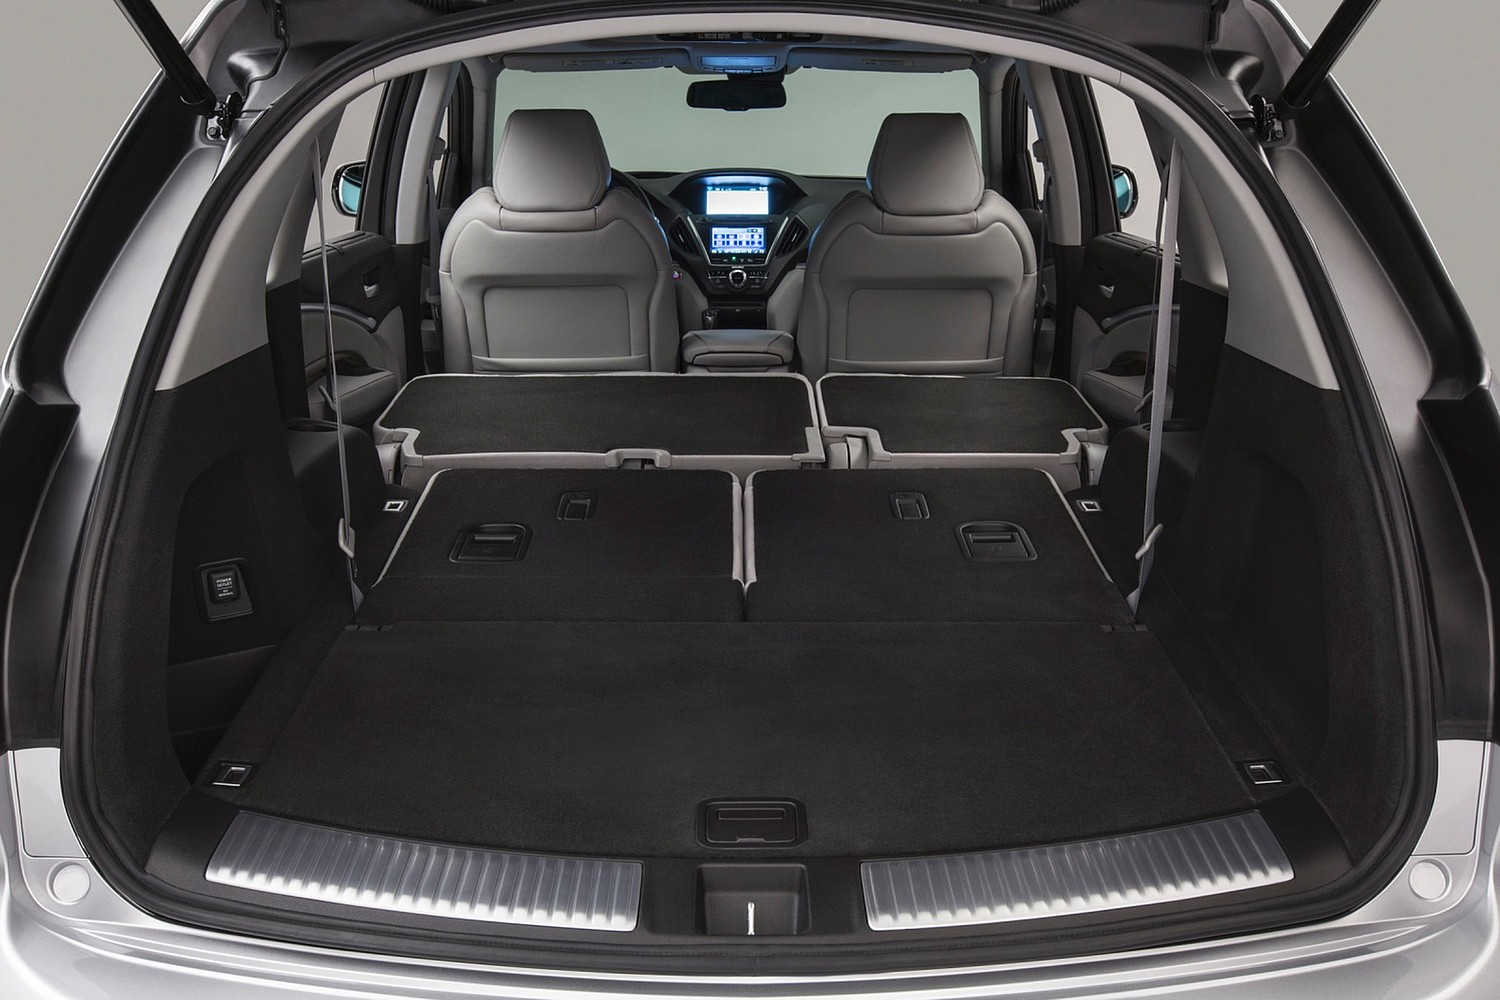 Acura MDX SH-AWD w/Technology and Entertainment Packages 4dr SUV Cargo Area (2014 model year shown)